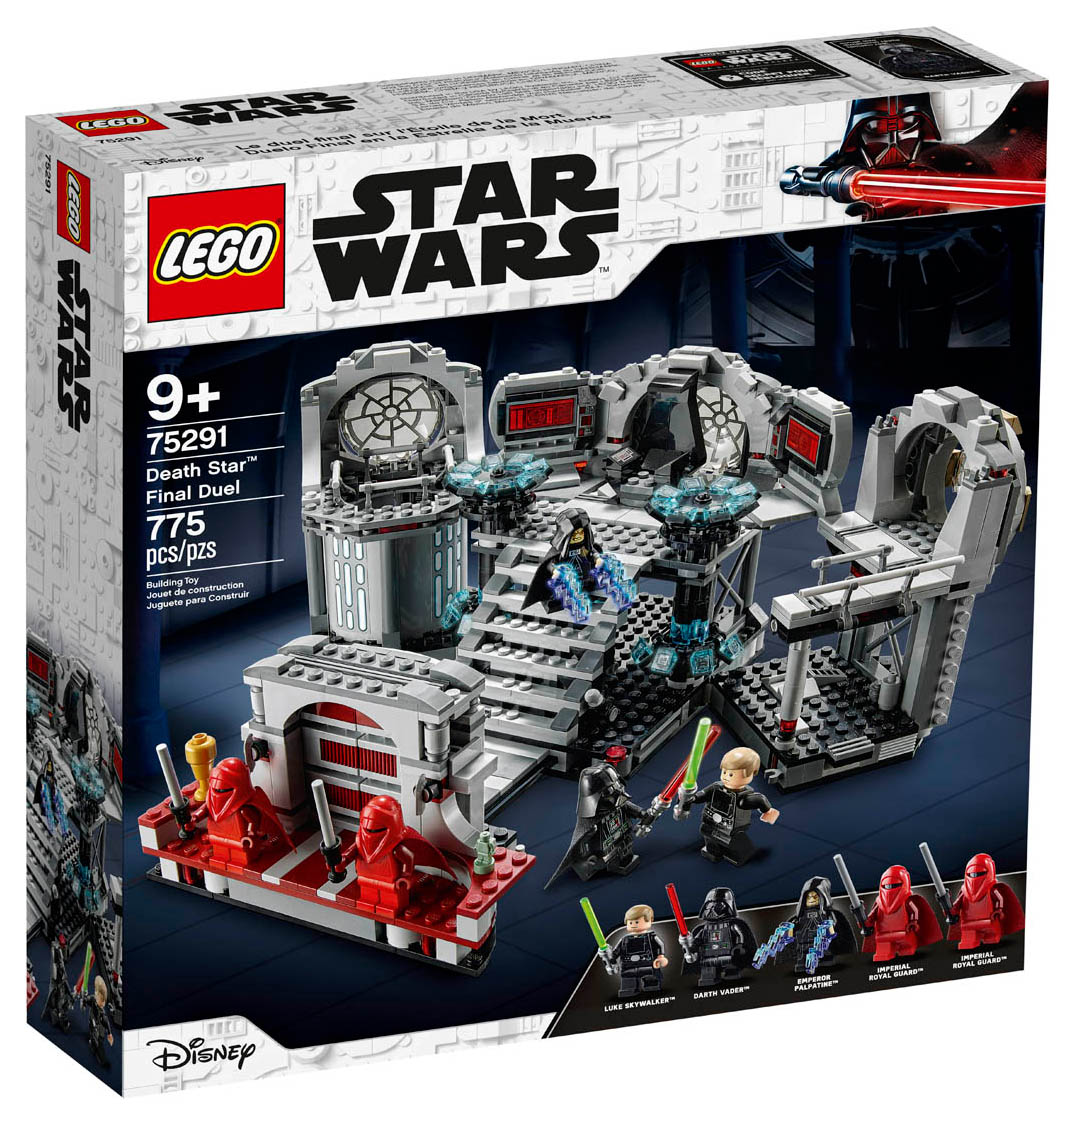 LEGO Star Wars 75291 Death Star Final Duel (1)